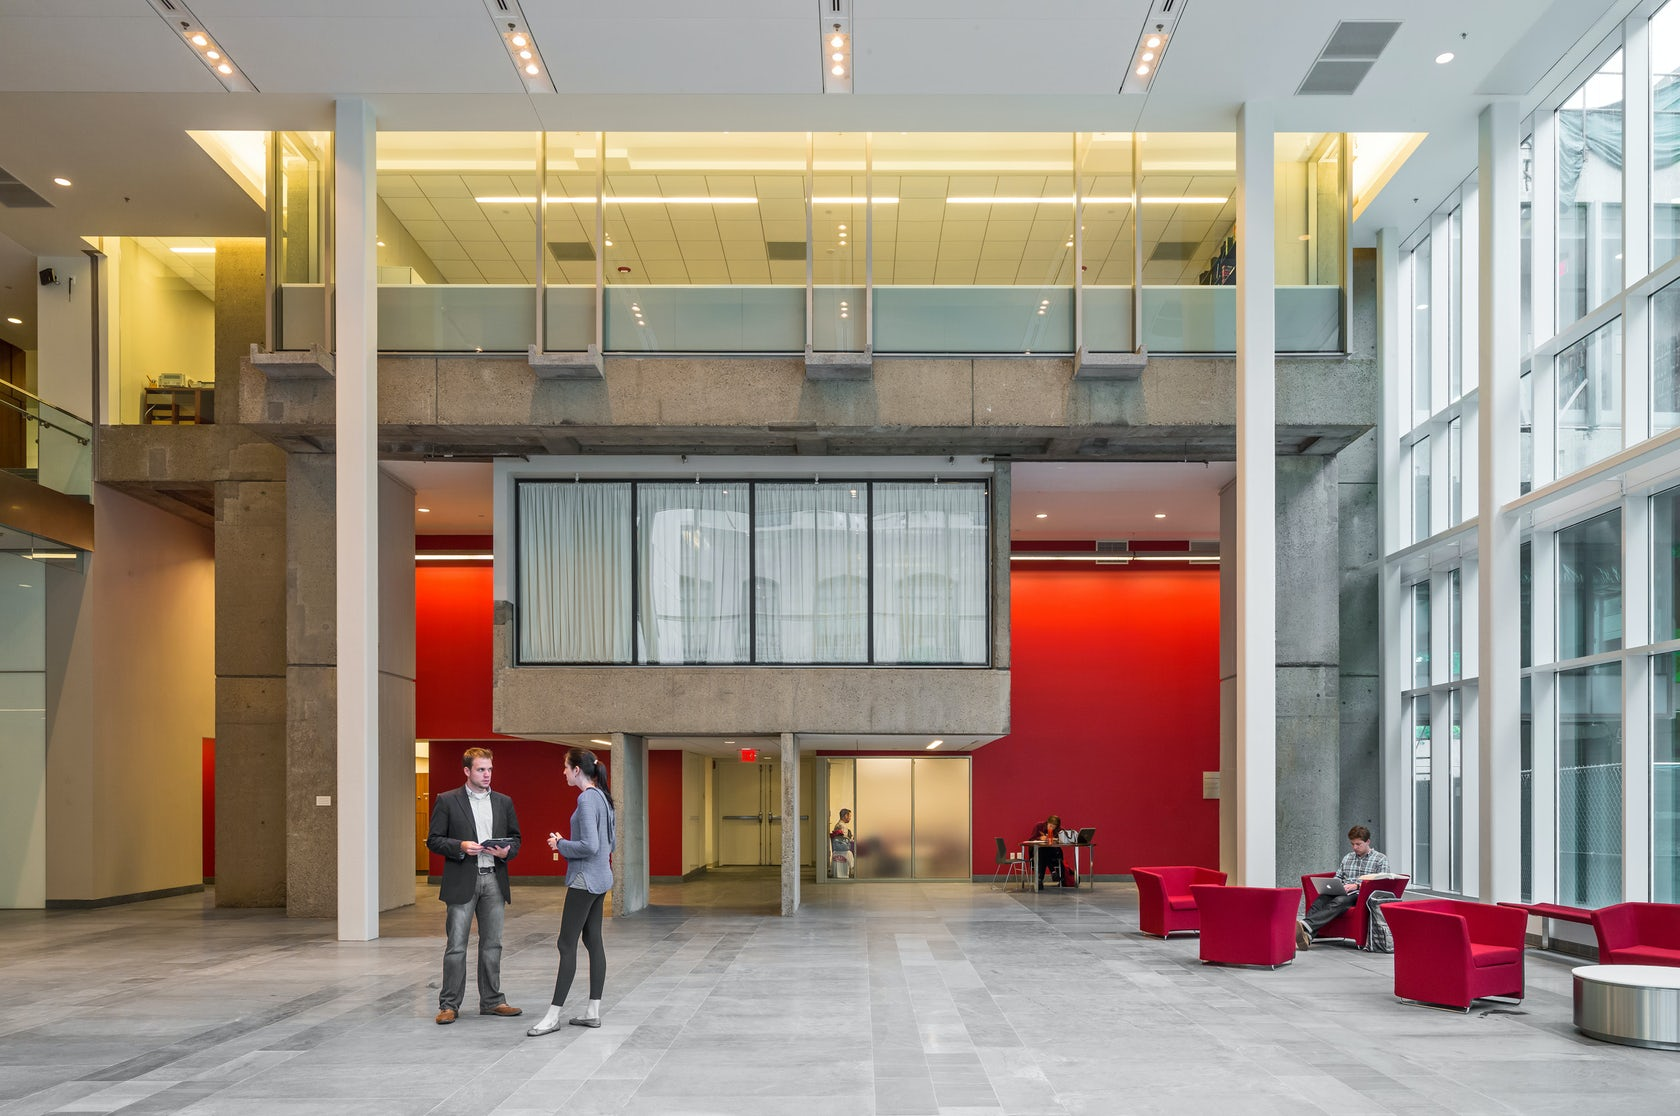 Boston university school of law phase i architizer for College street motors amherst ma